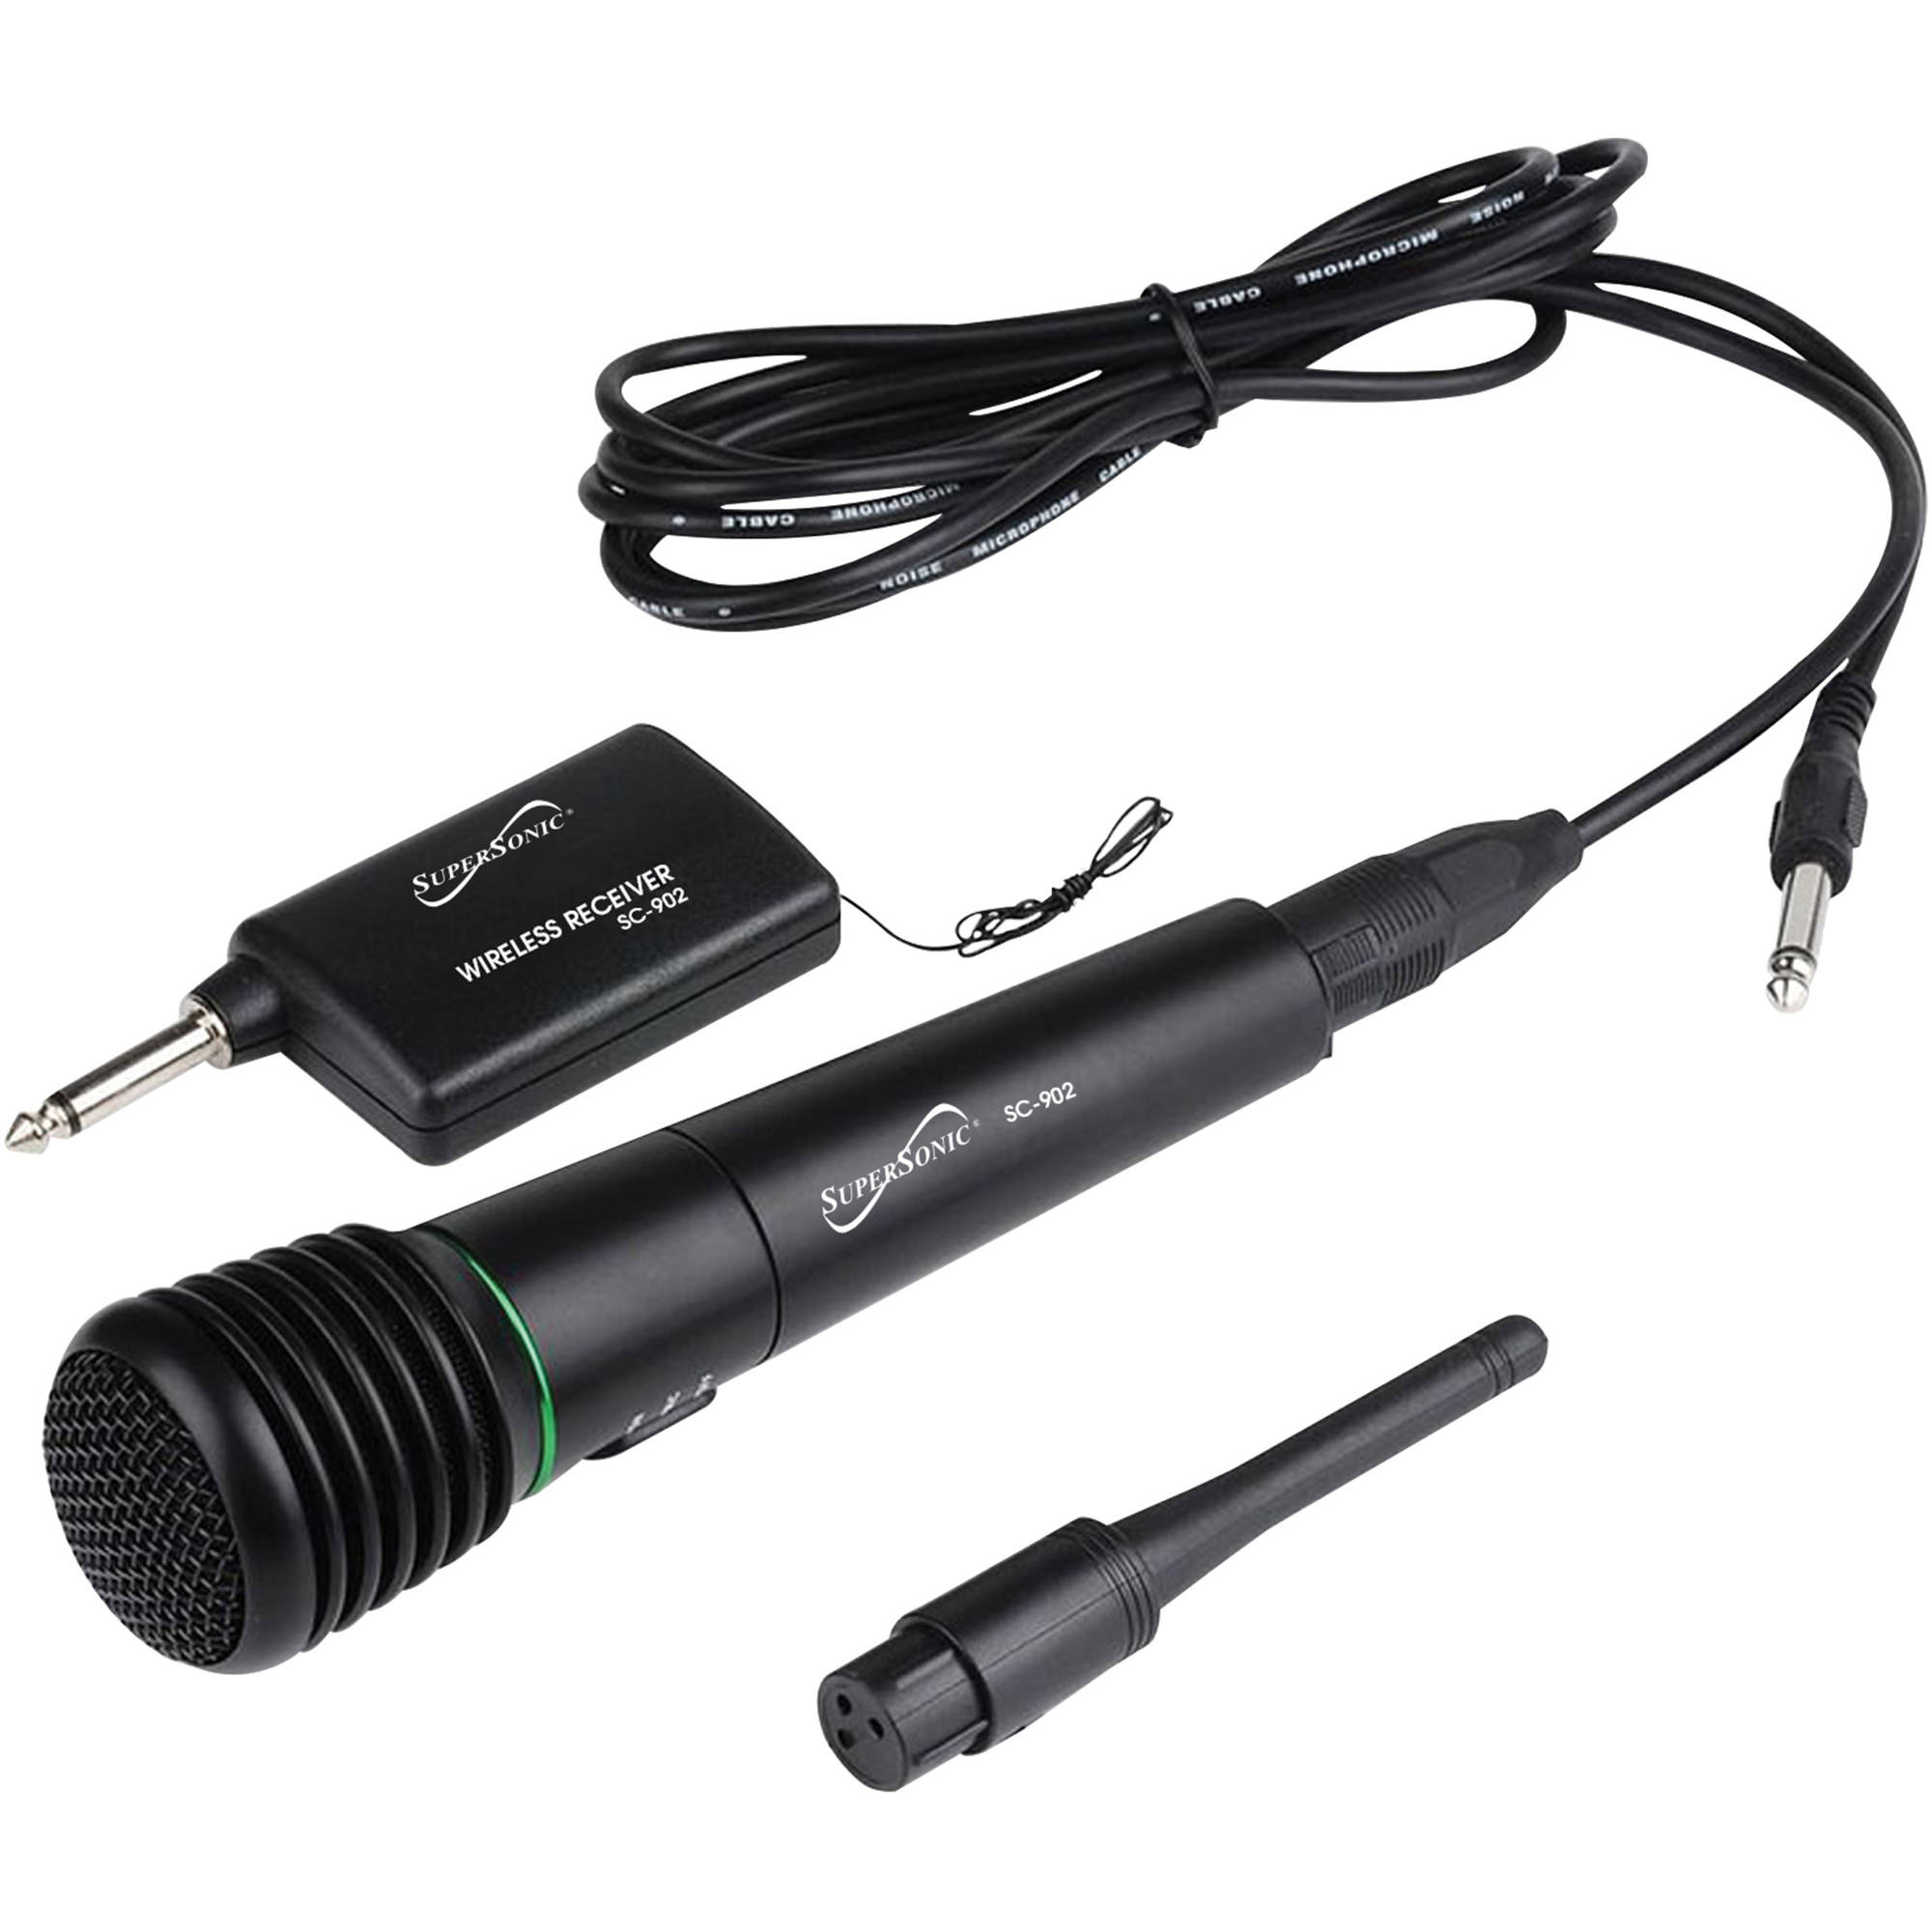 SuperSonic ProVoice 2-in-1 Wireless/Wired Professional Microphone